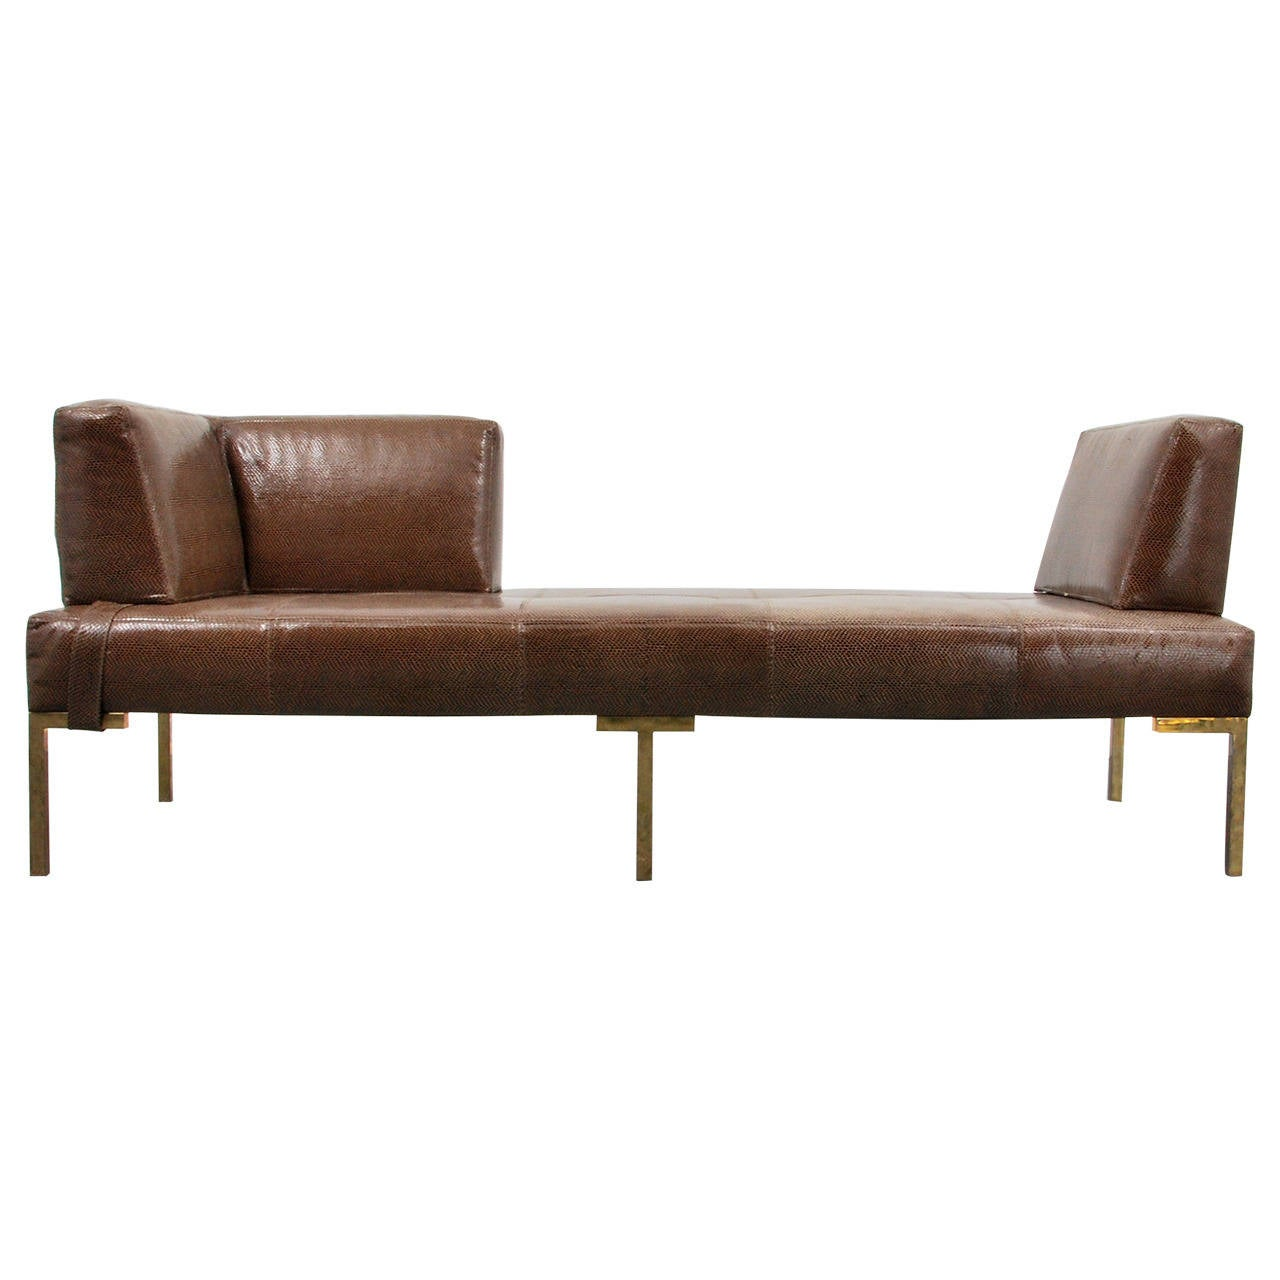 Luigi Gentile Leather Daybeds or Chaise Lounges Two Available at 1stdibs